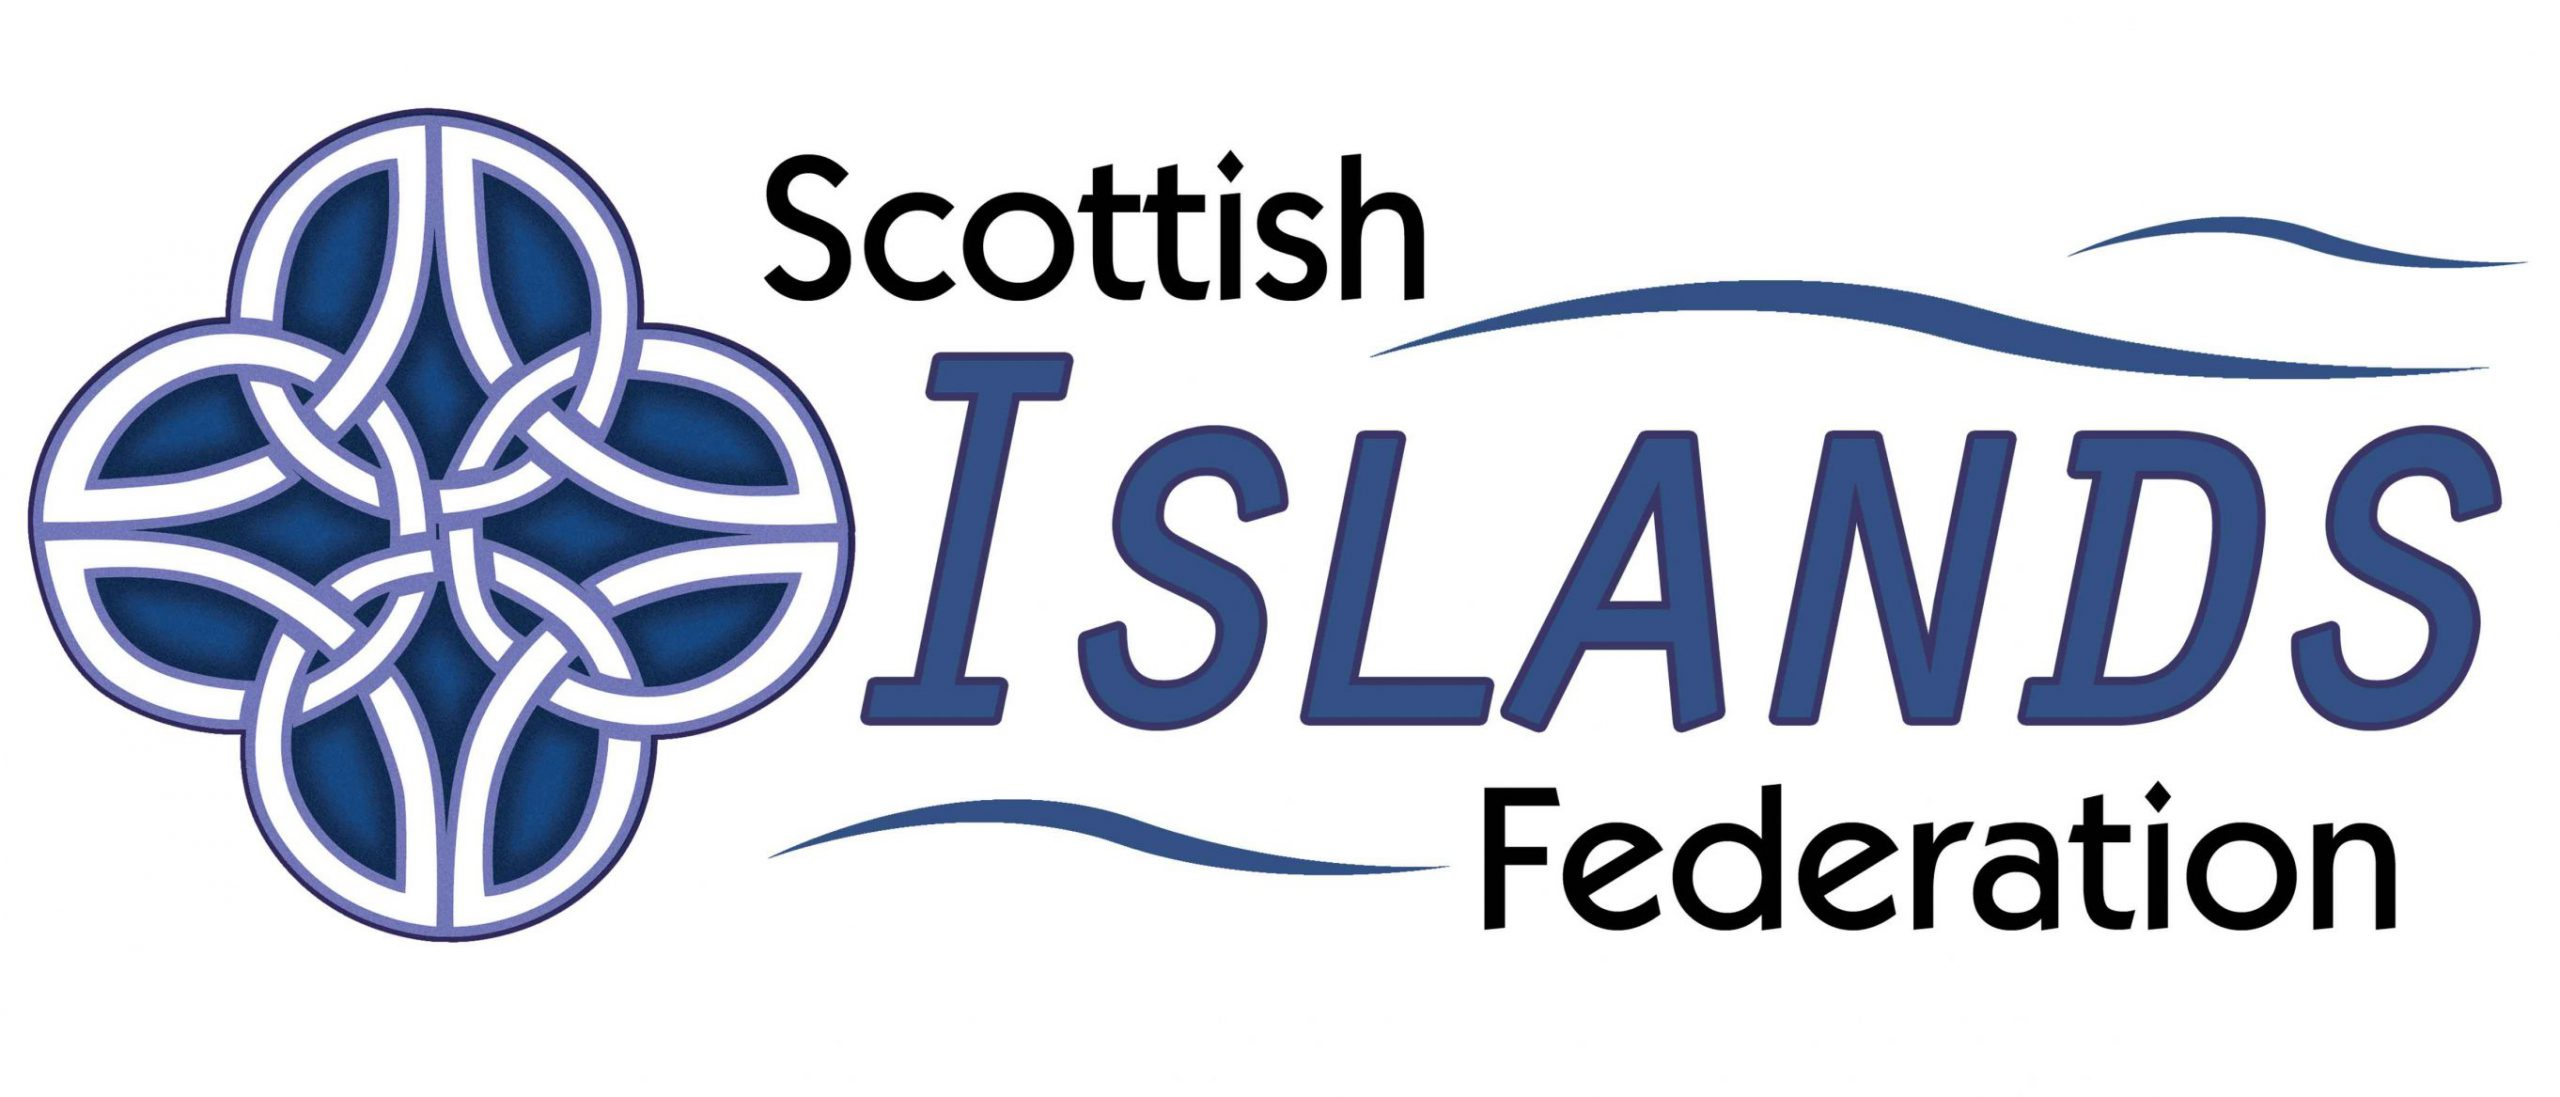 The Scottish Islands Federation